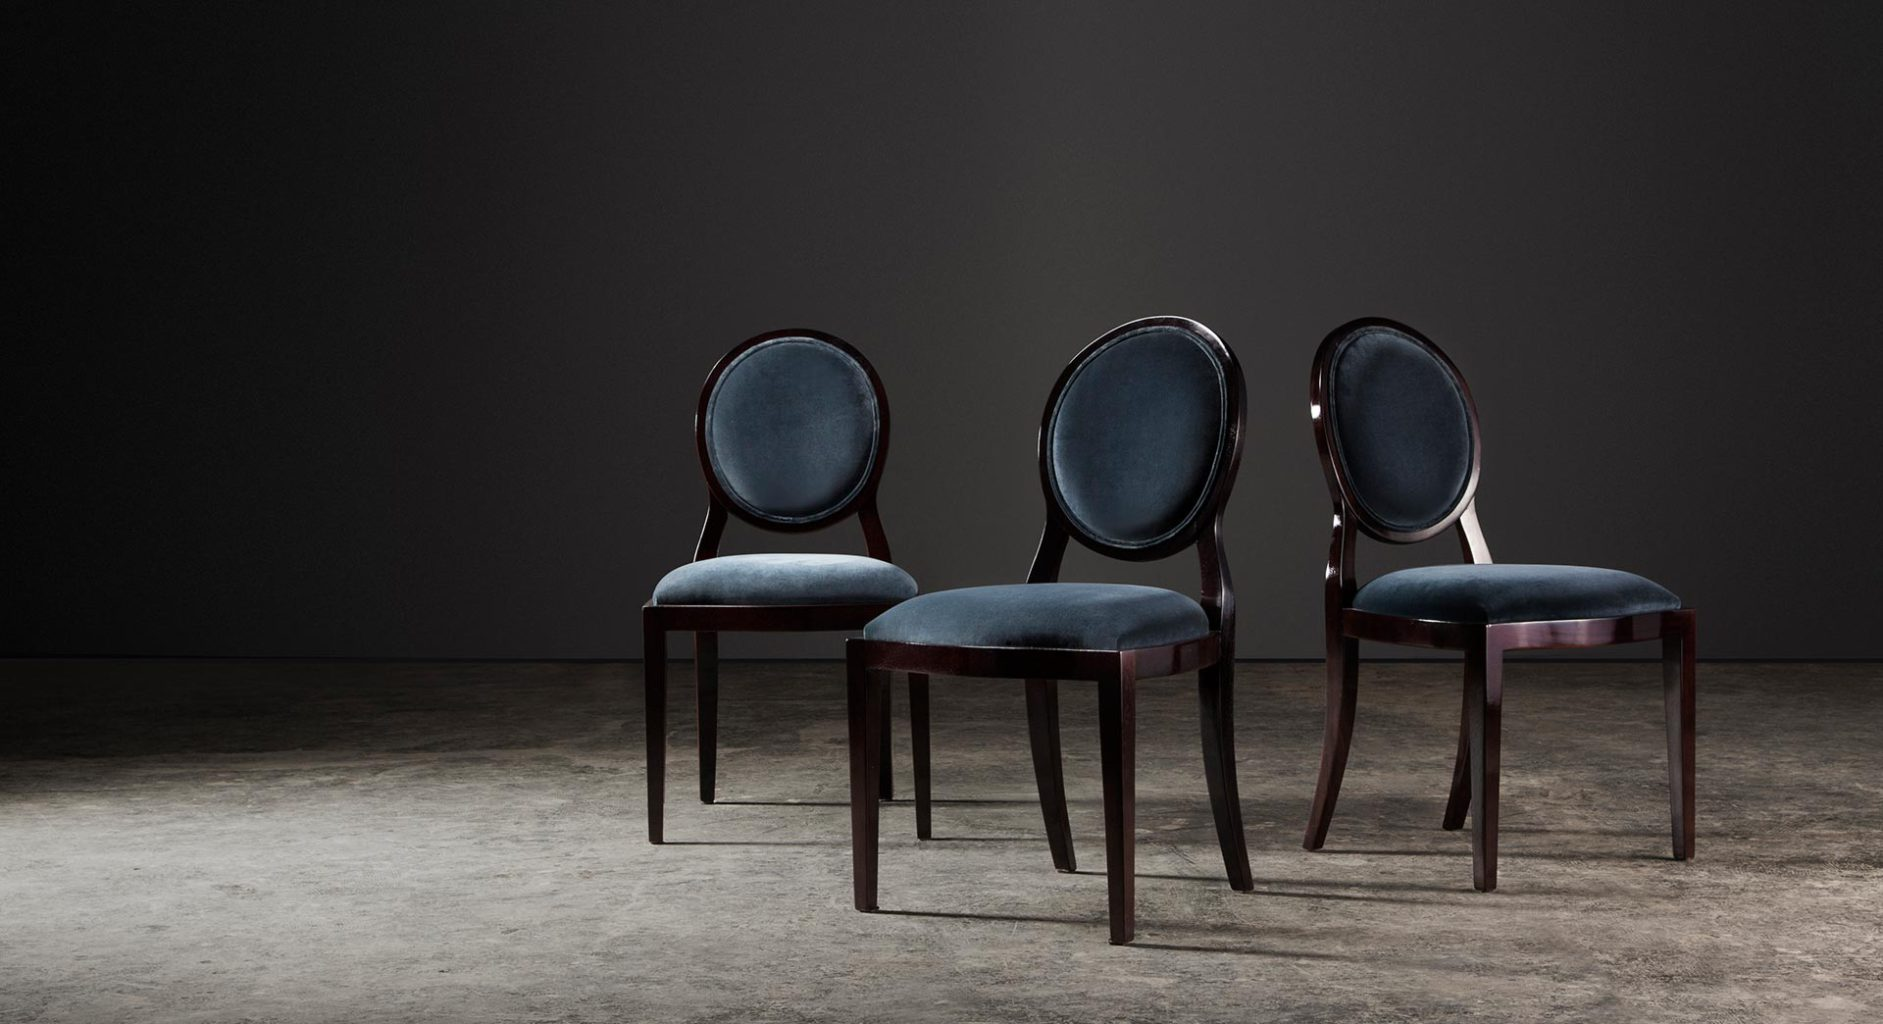 Elegant solid wood Sandton chairs by Pierre Cronje